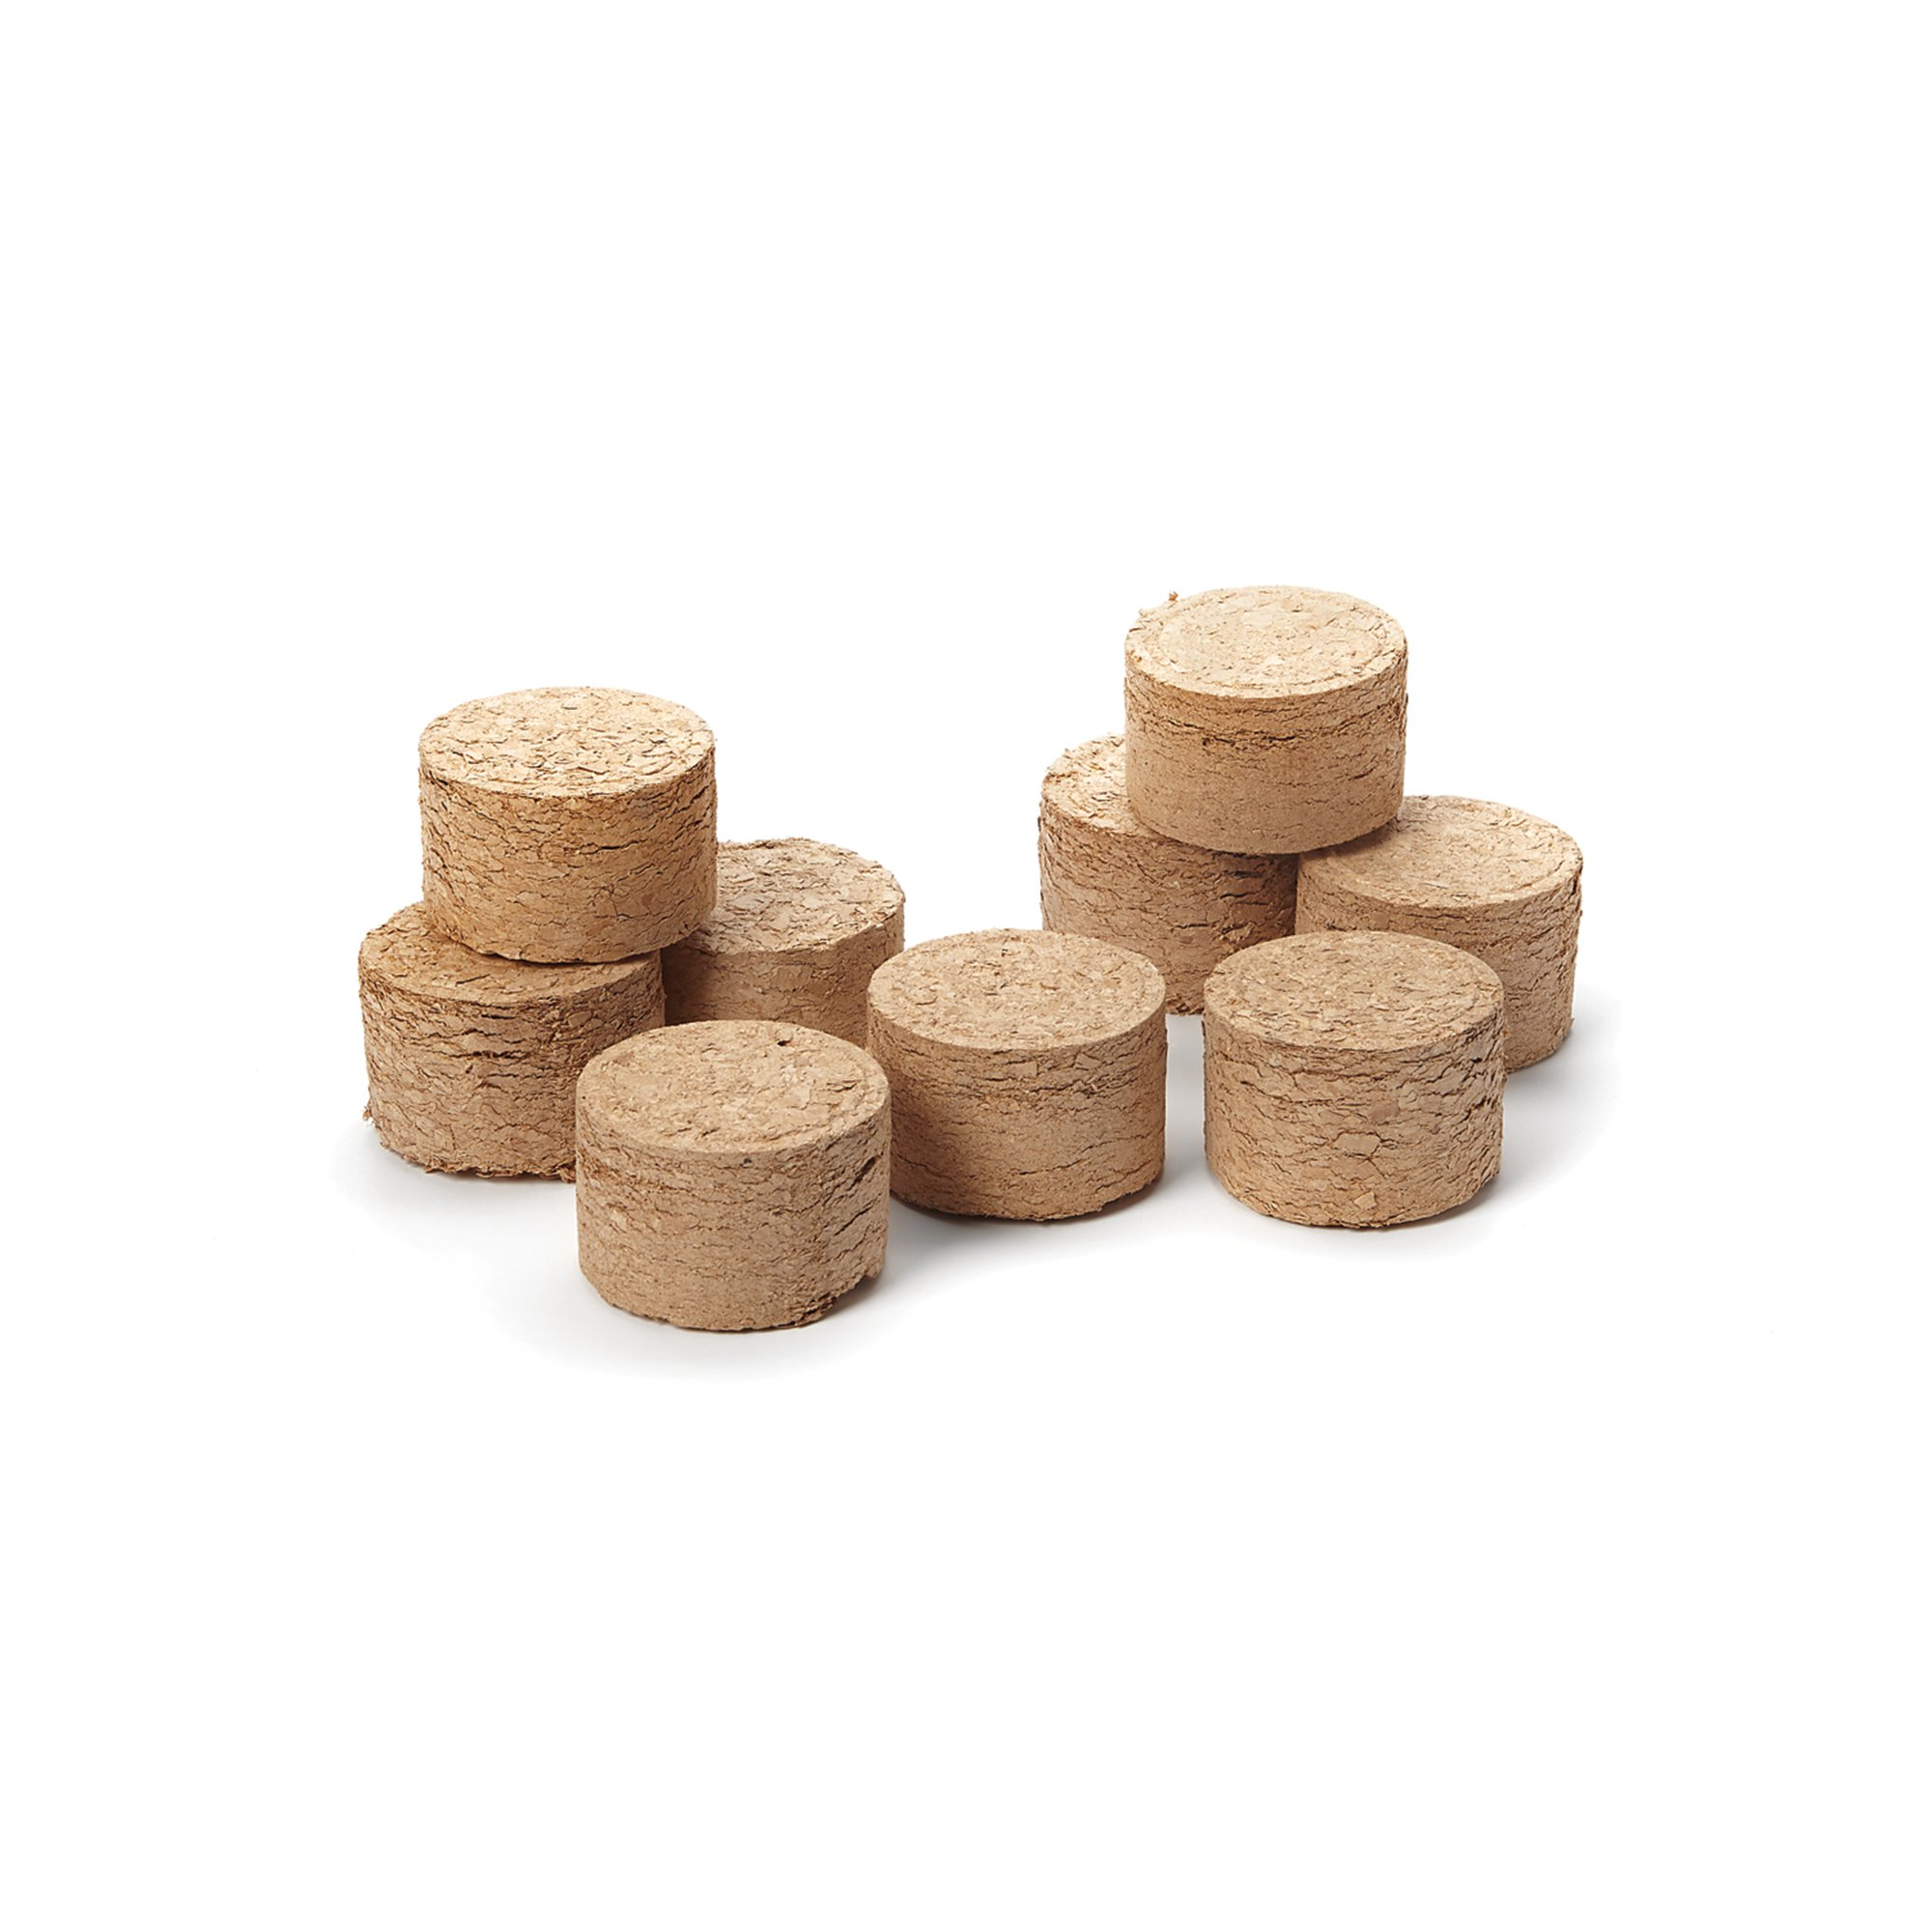 Outset 76354 Wood Chip Smoking Pucks, Apple, Maple and Hickory, Set of 9